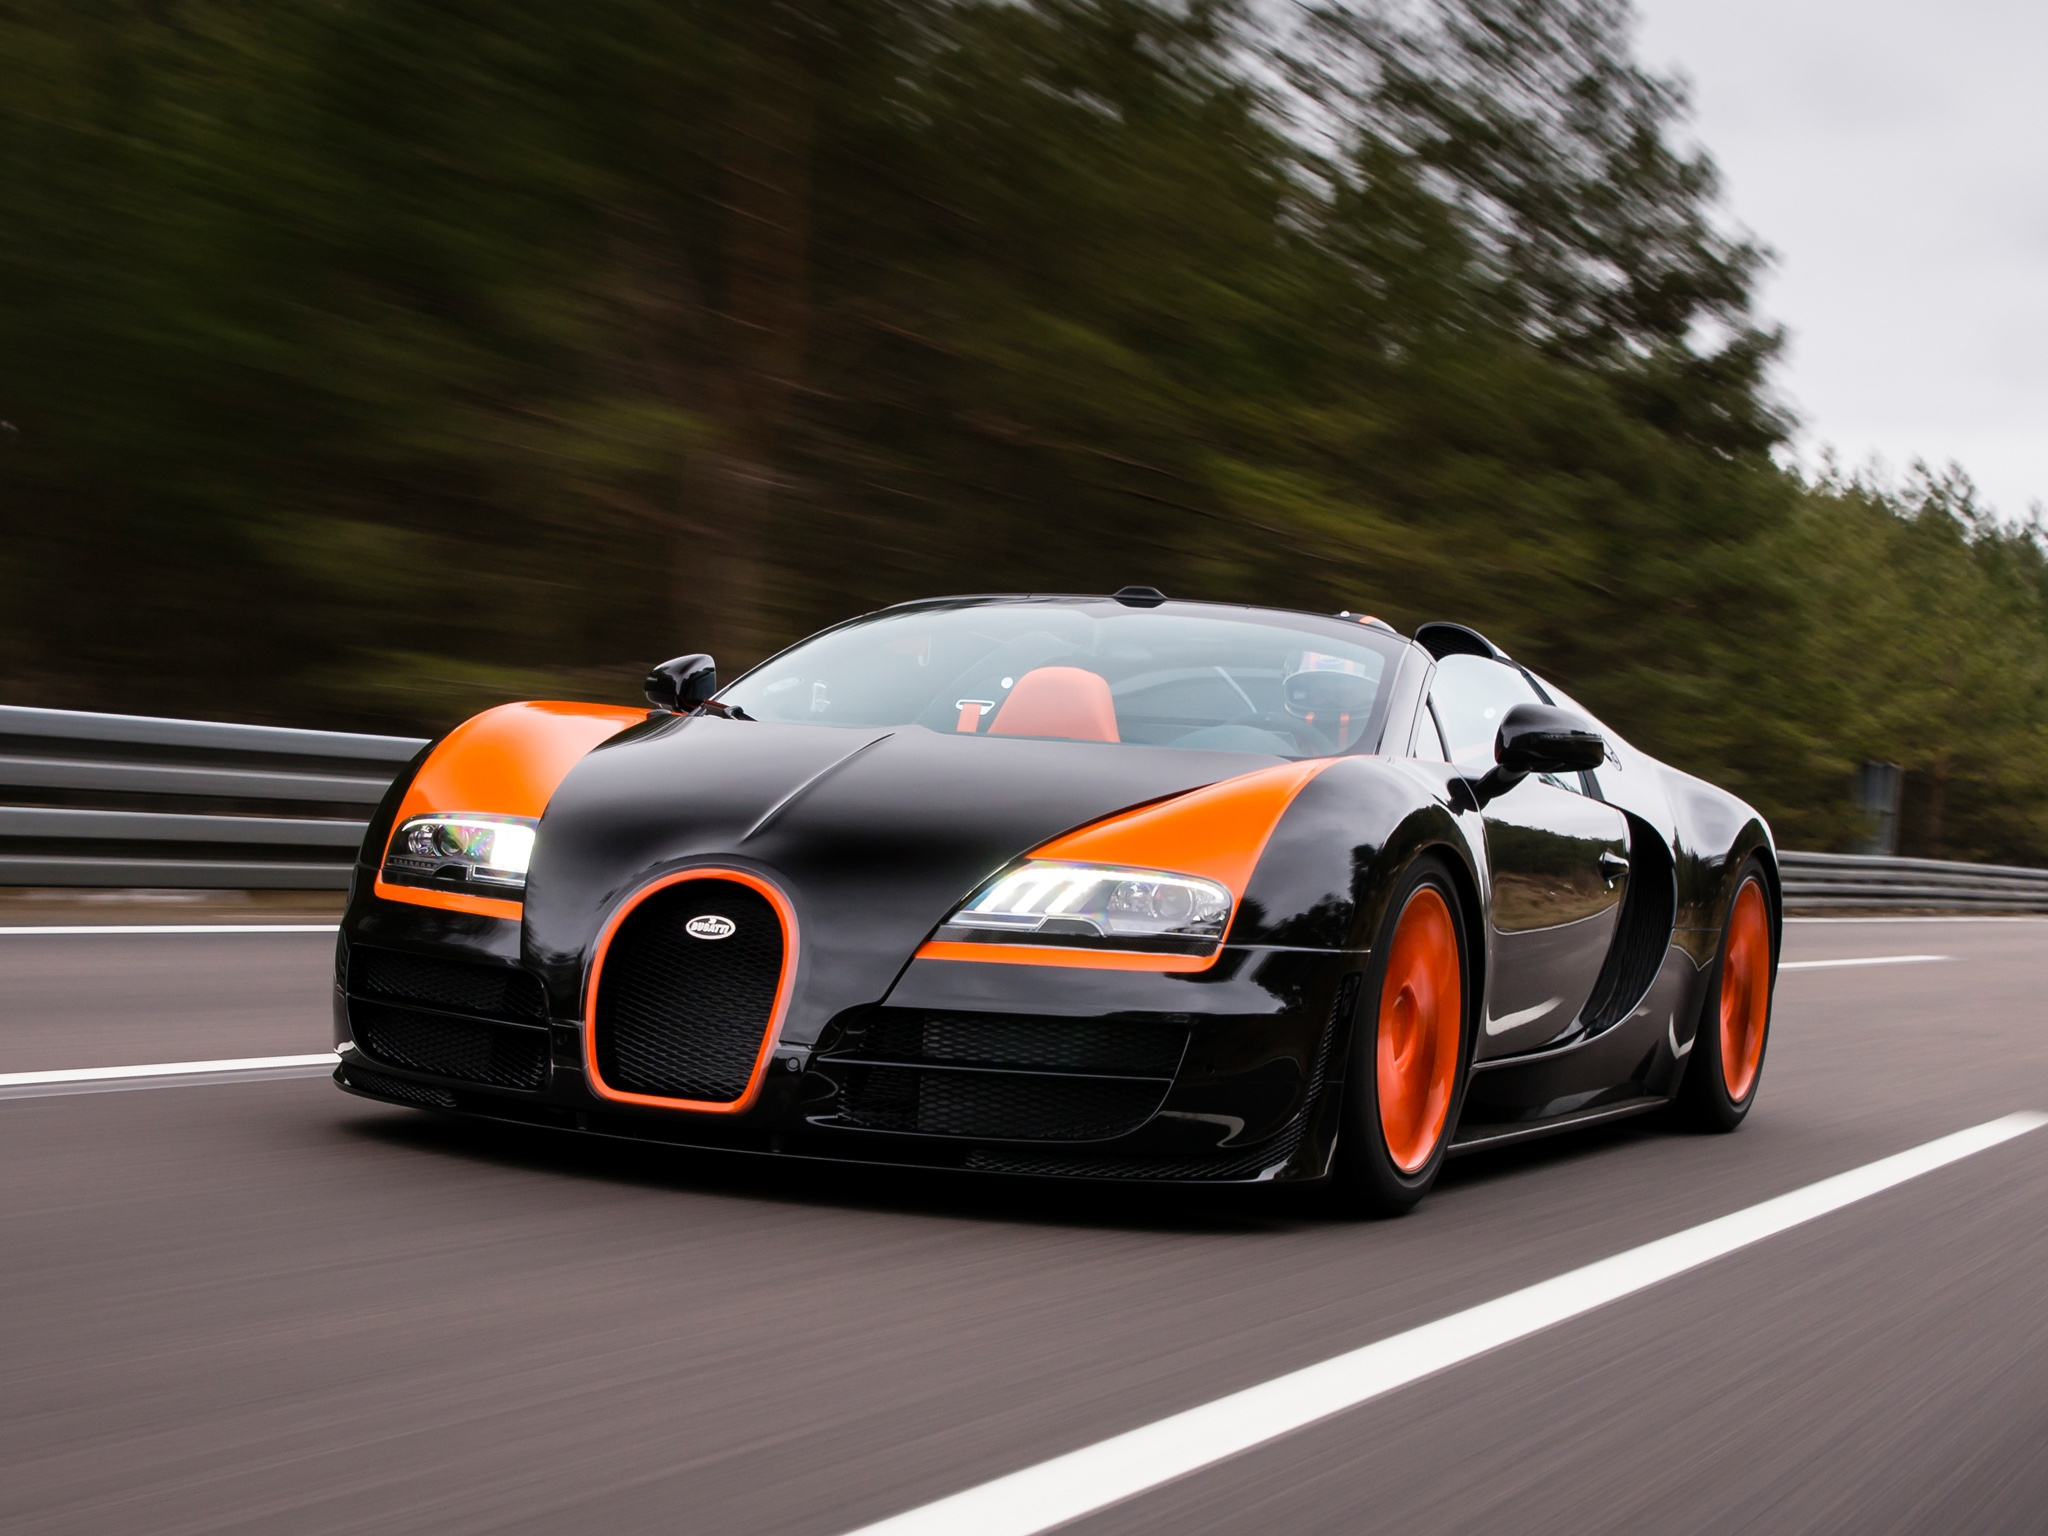 bugatti veyron wallpapers images photos pictures backgrounds. Black Bedroom Furniture Sets. Home Design Ideas